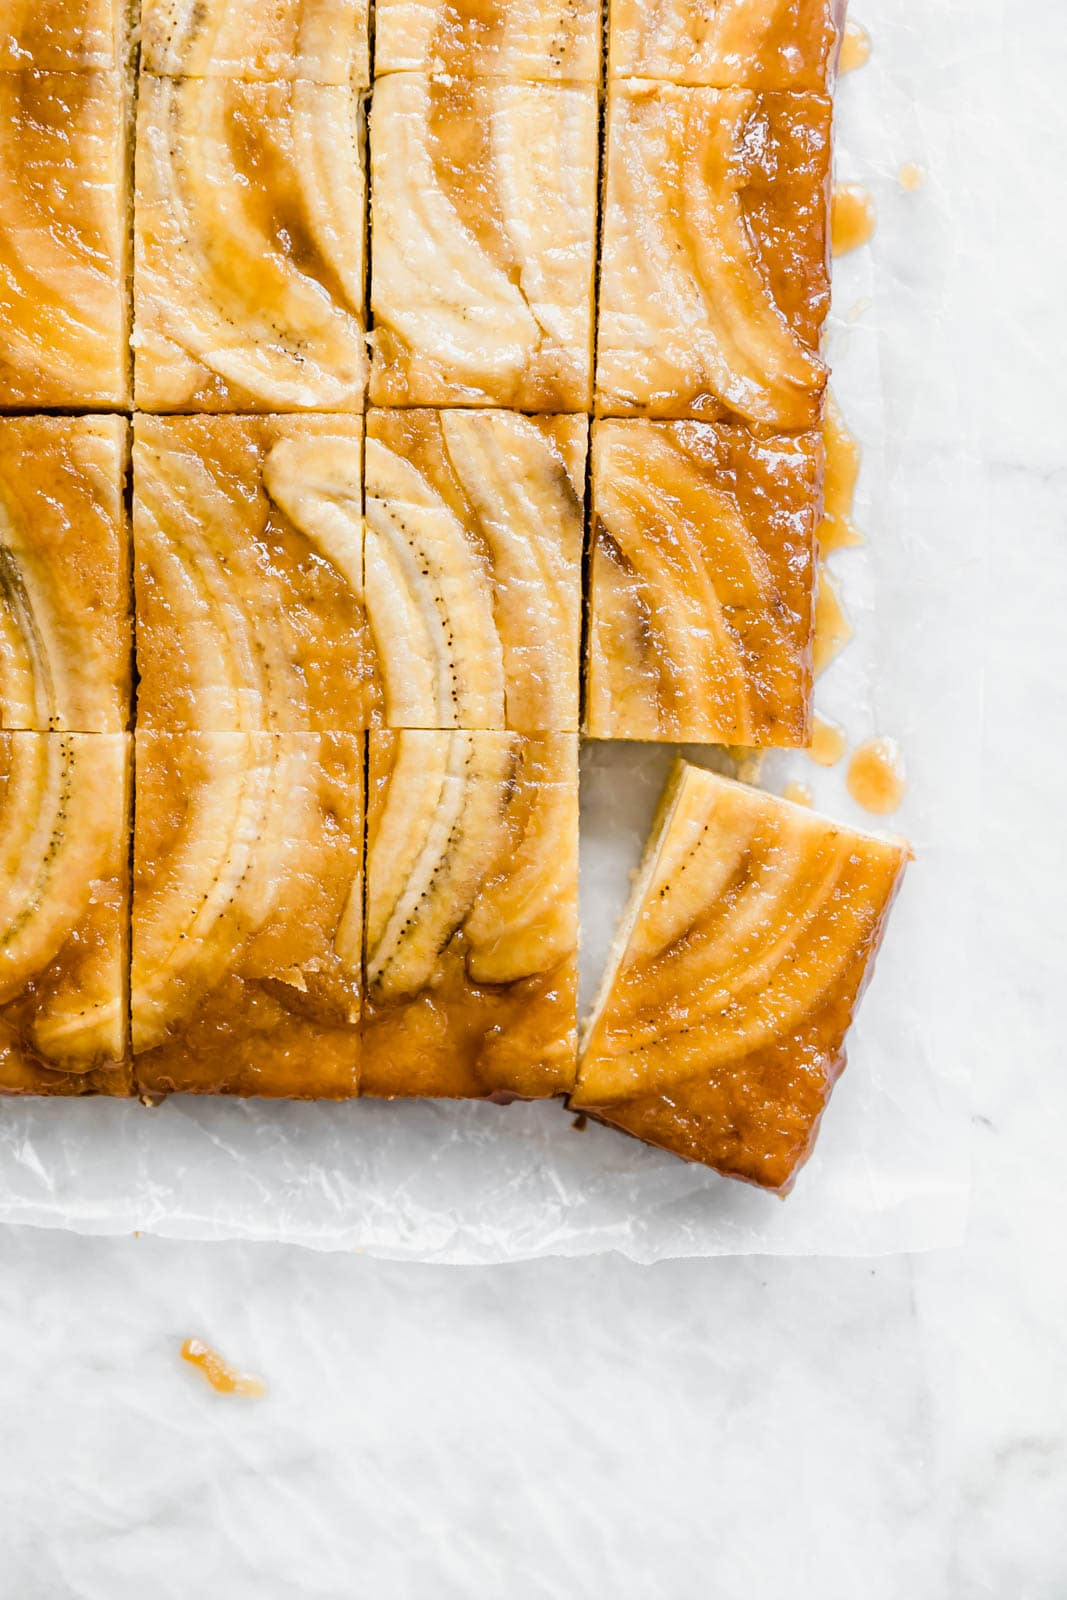 sliced Banana Upside Down Cake